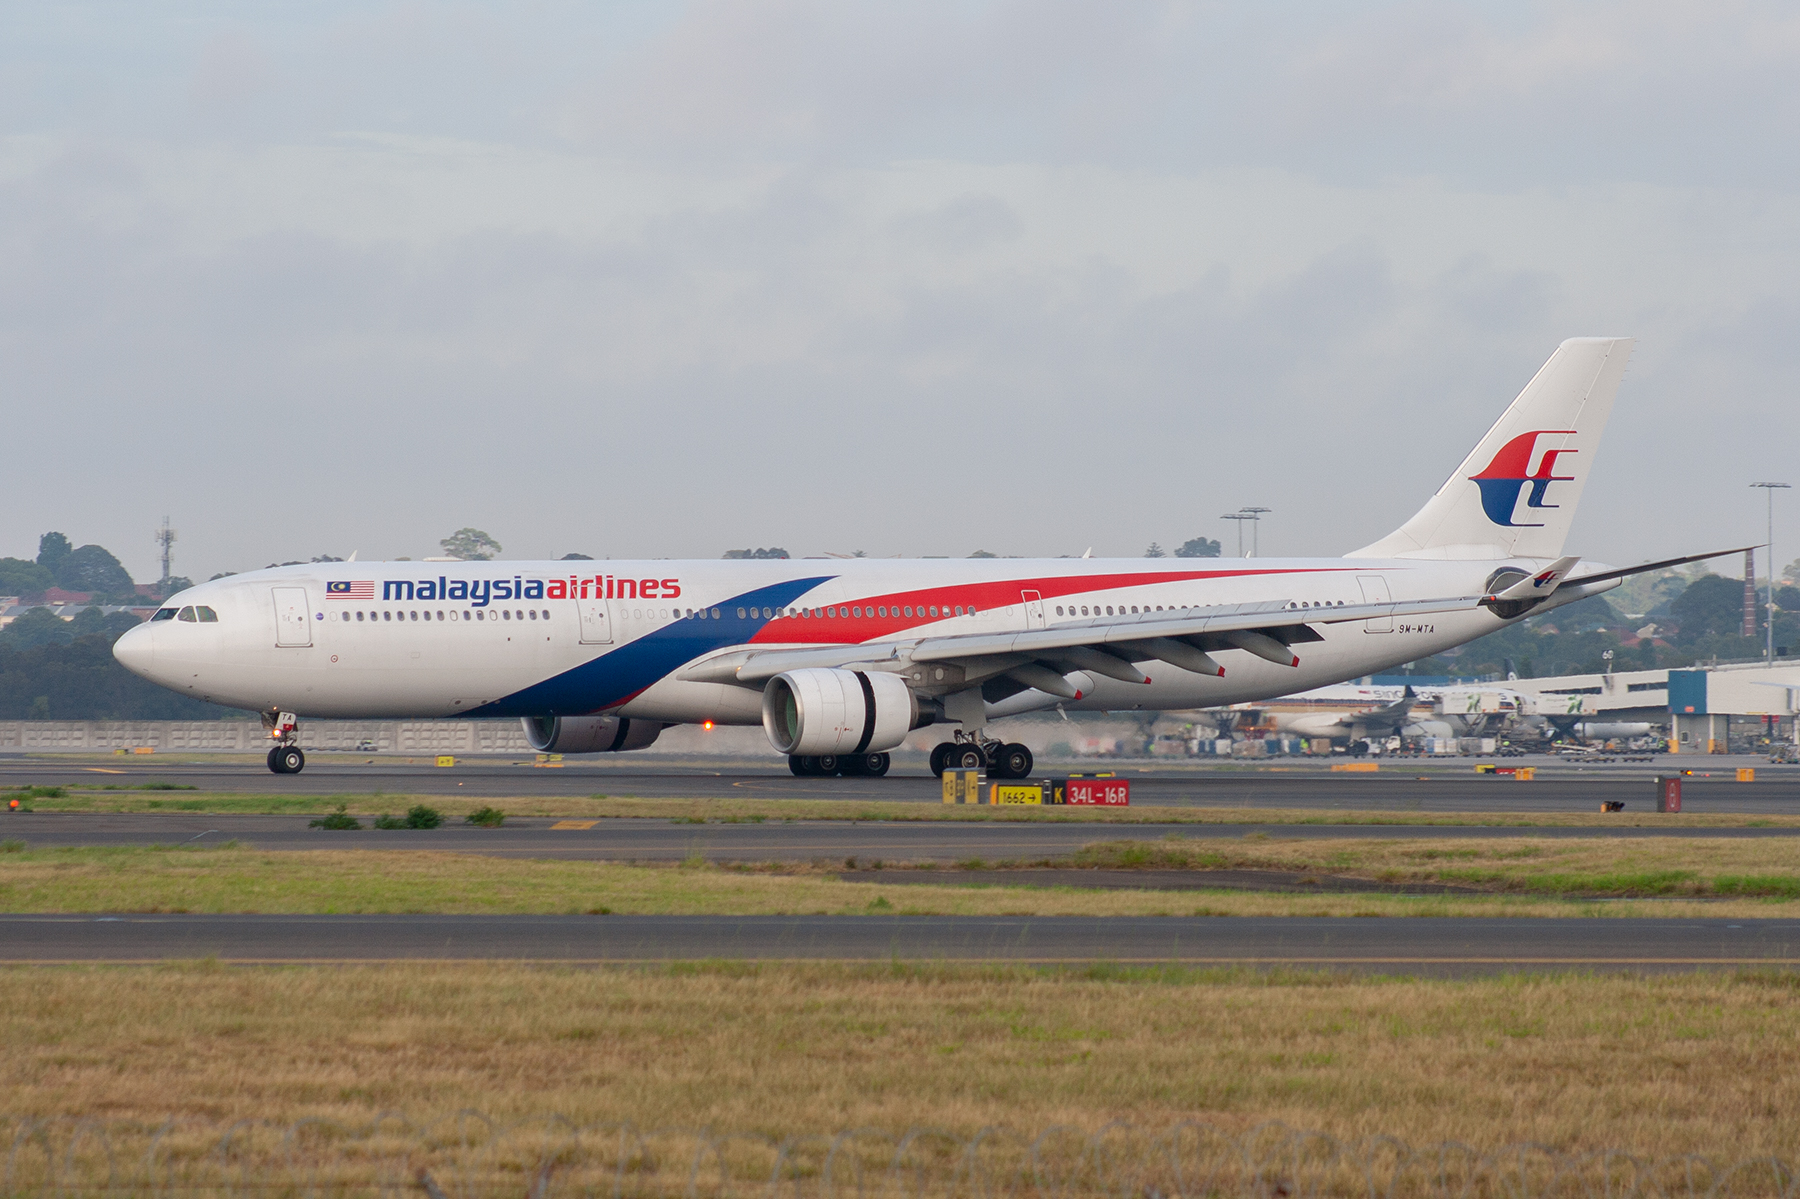 Malaysian Airlines Airbus A330-300 9M-MTA at Kingsford Smith